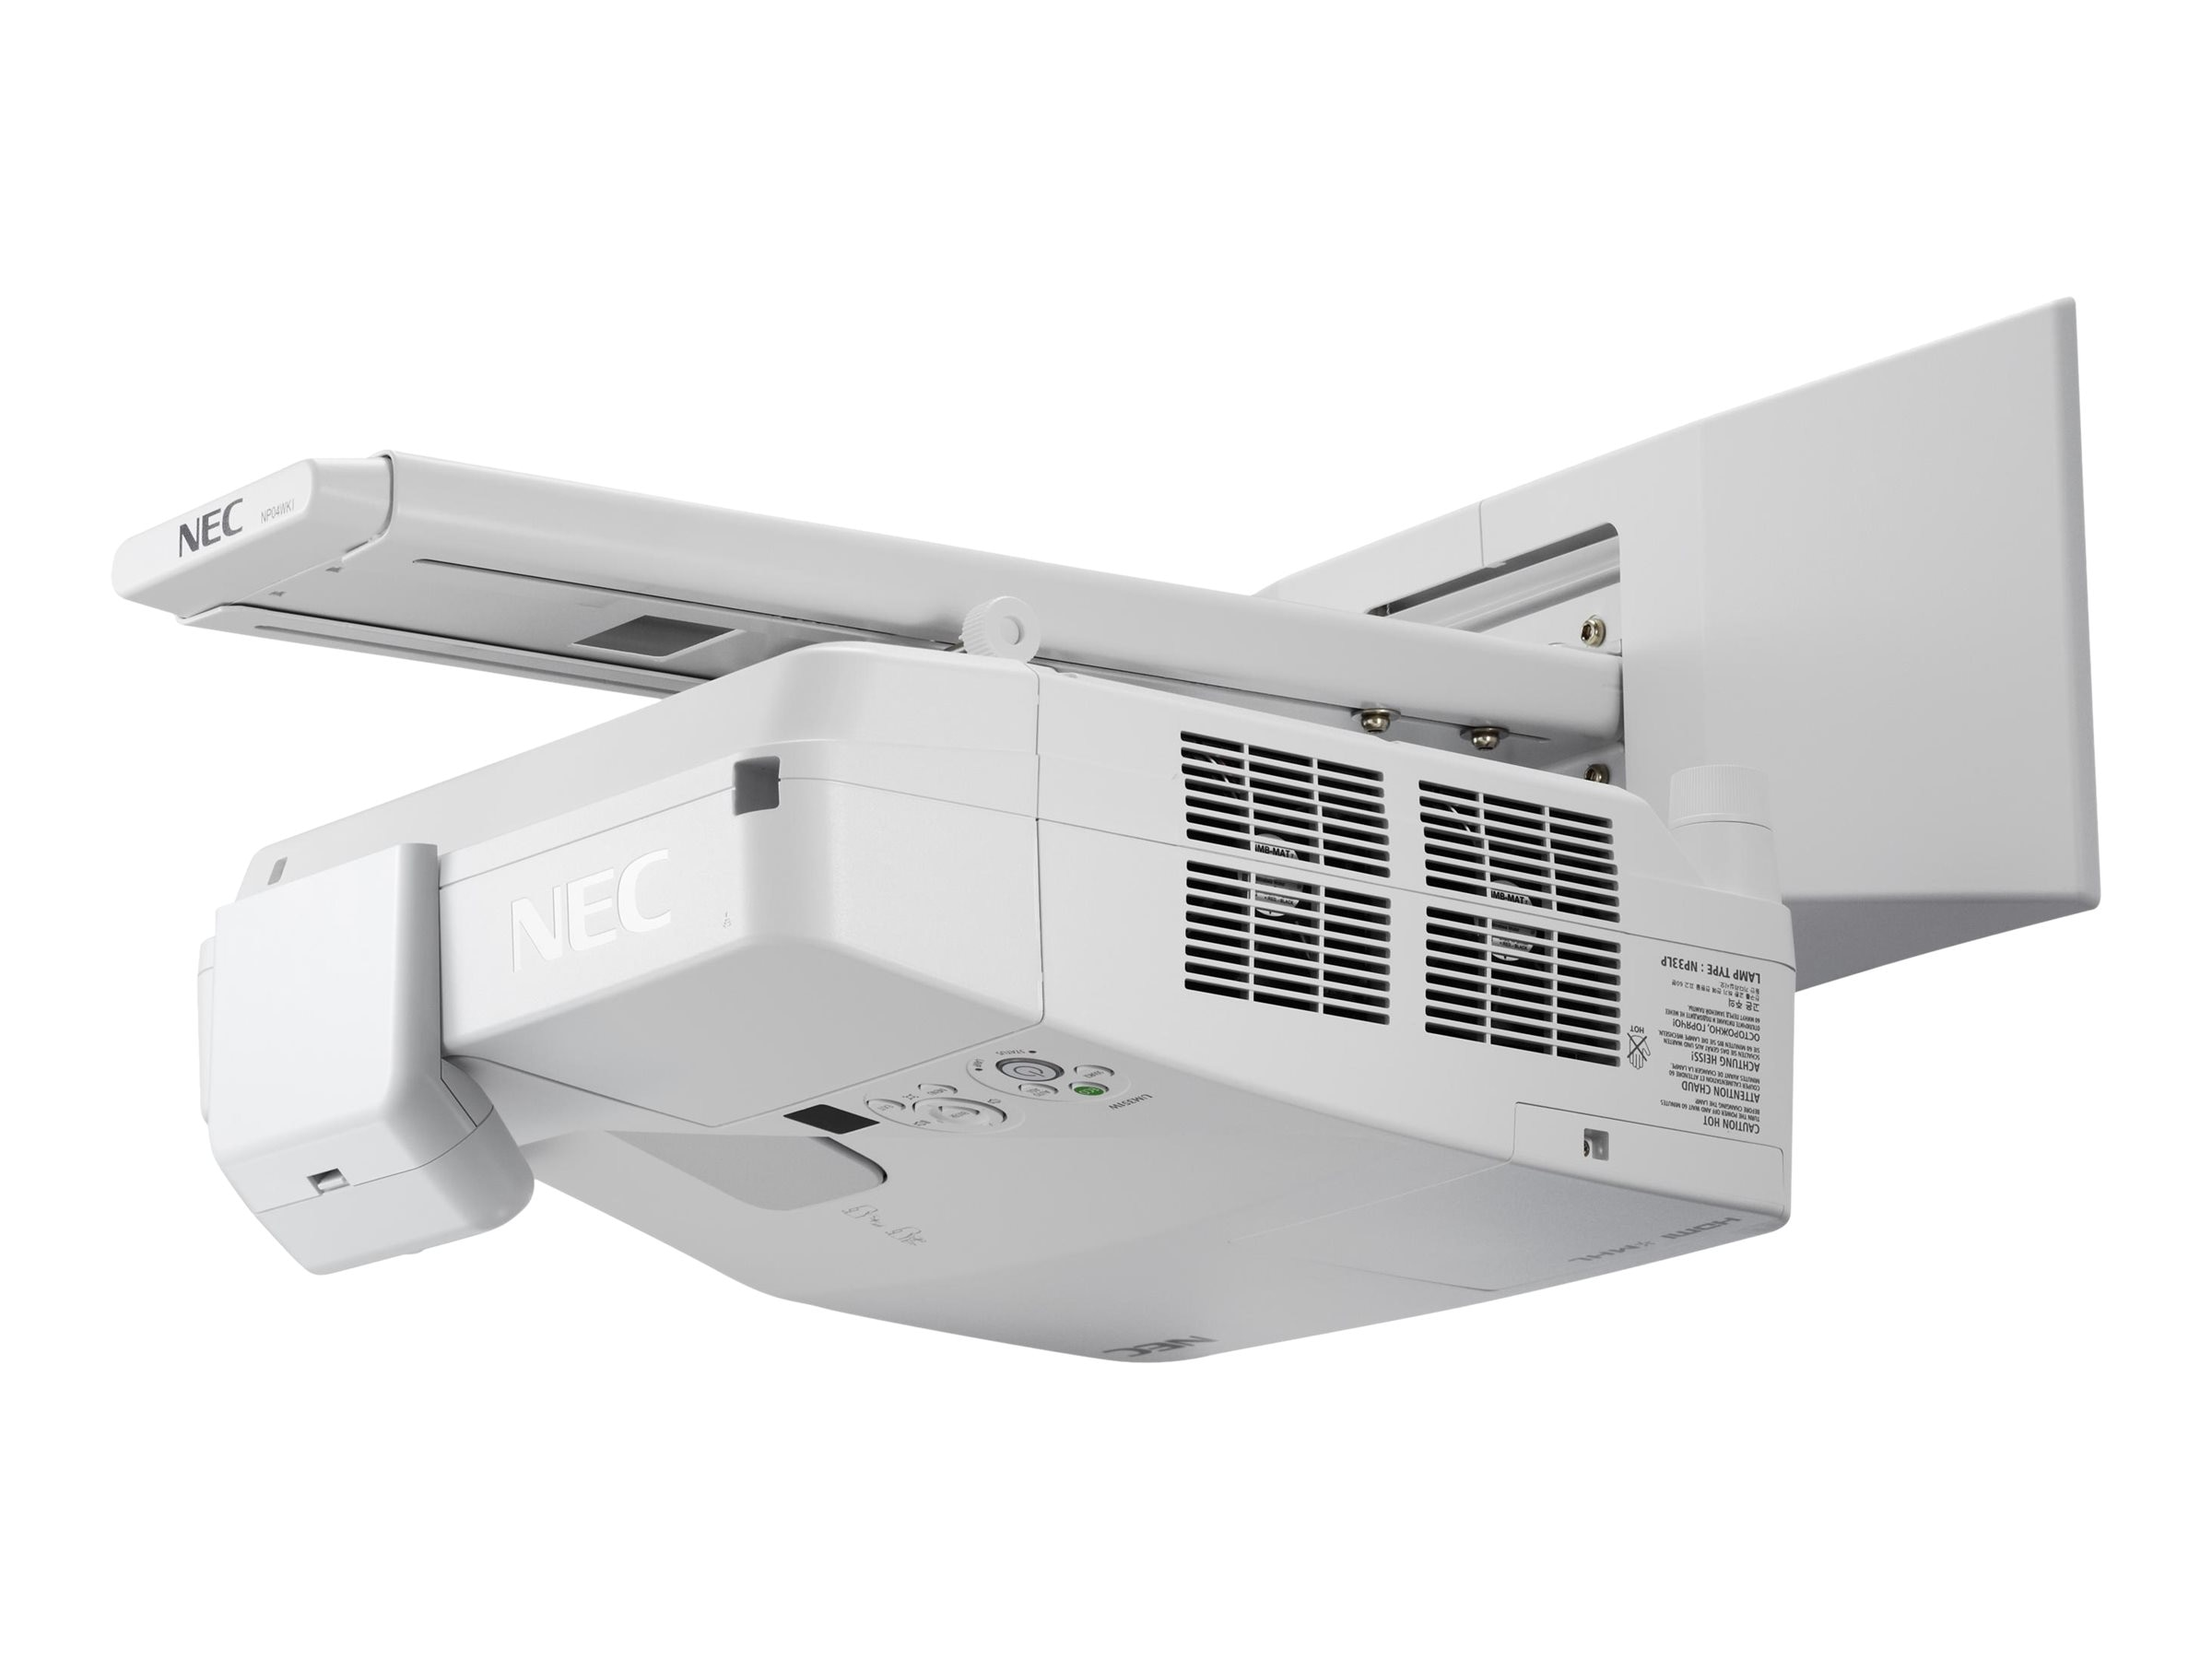 NEC UM361X Ultra Short Throw LCD Interactive Projector, 3600 Lumens, White with Wall Mount, Touch Module